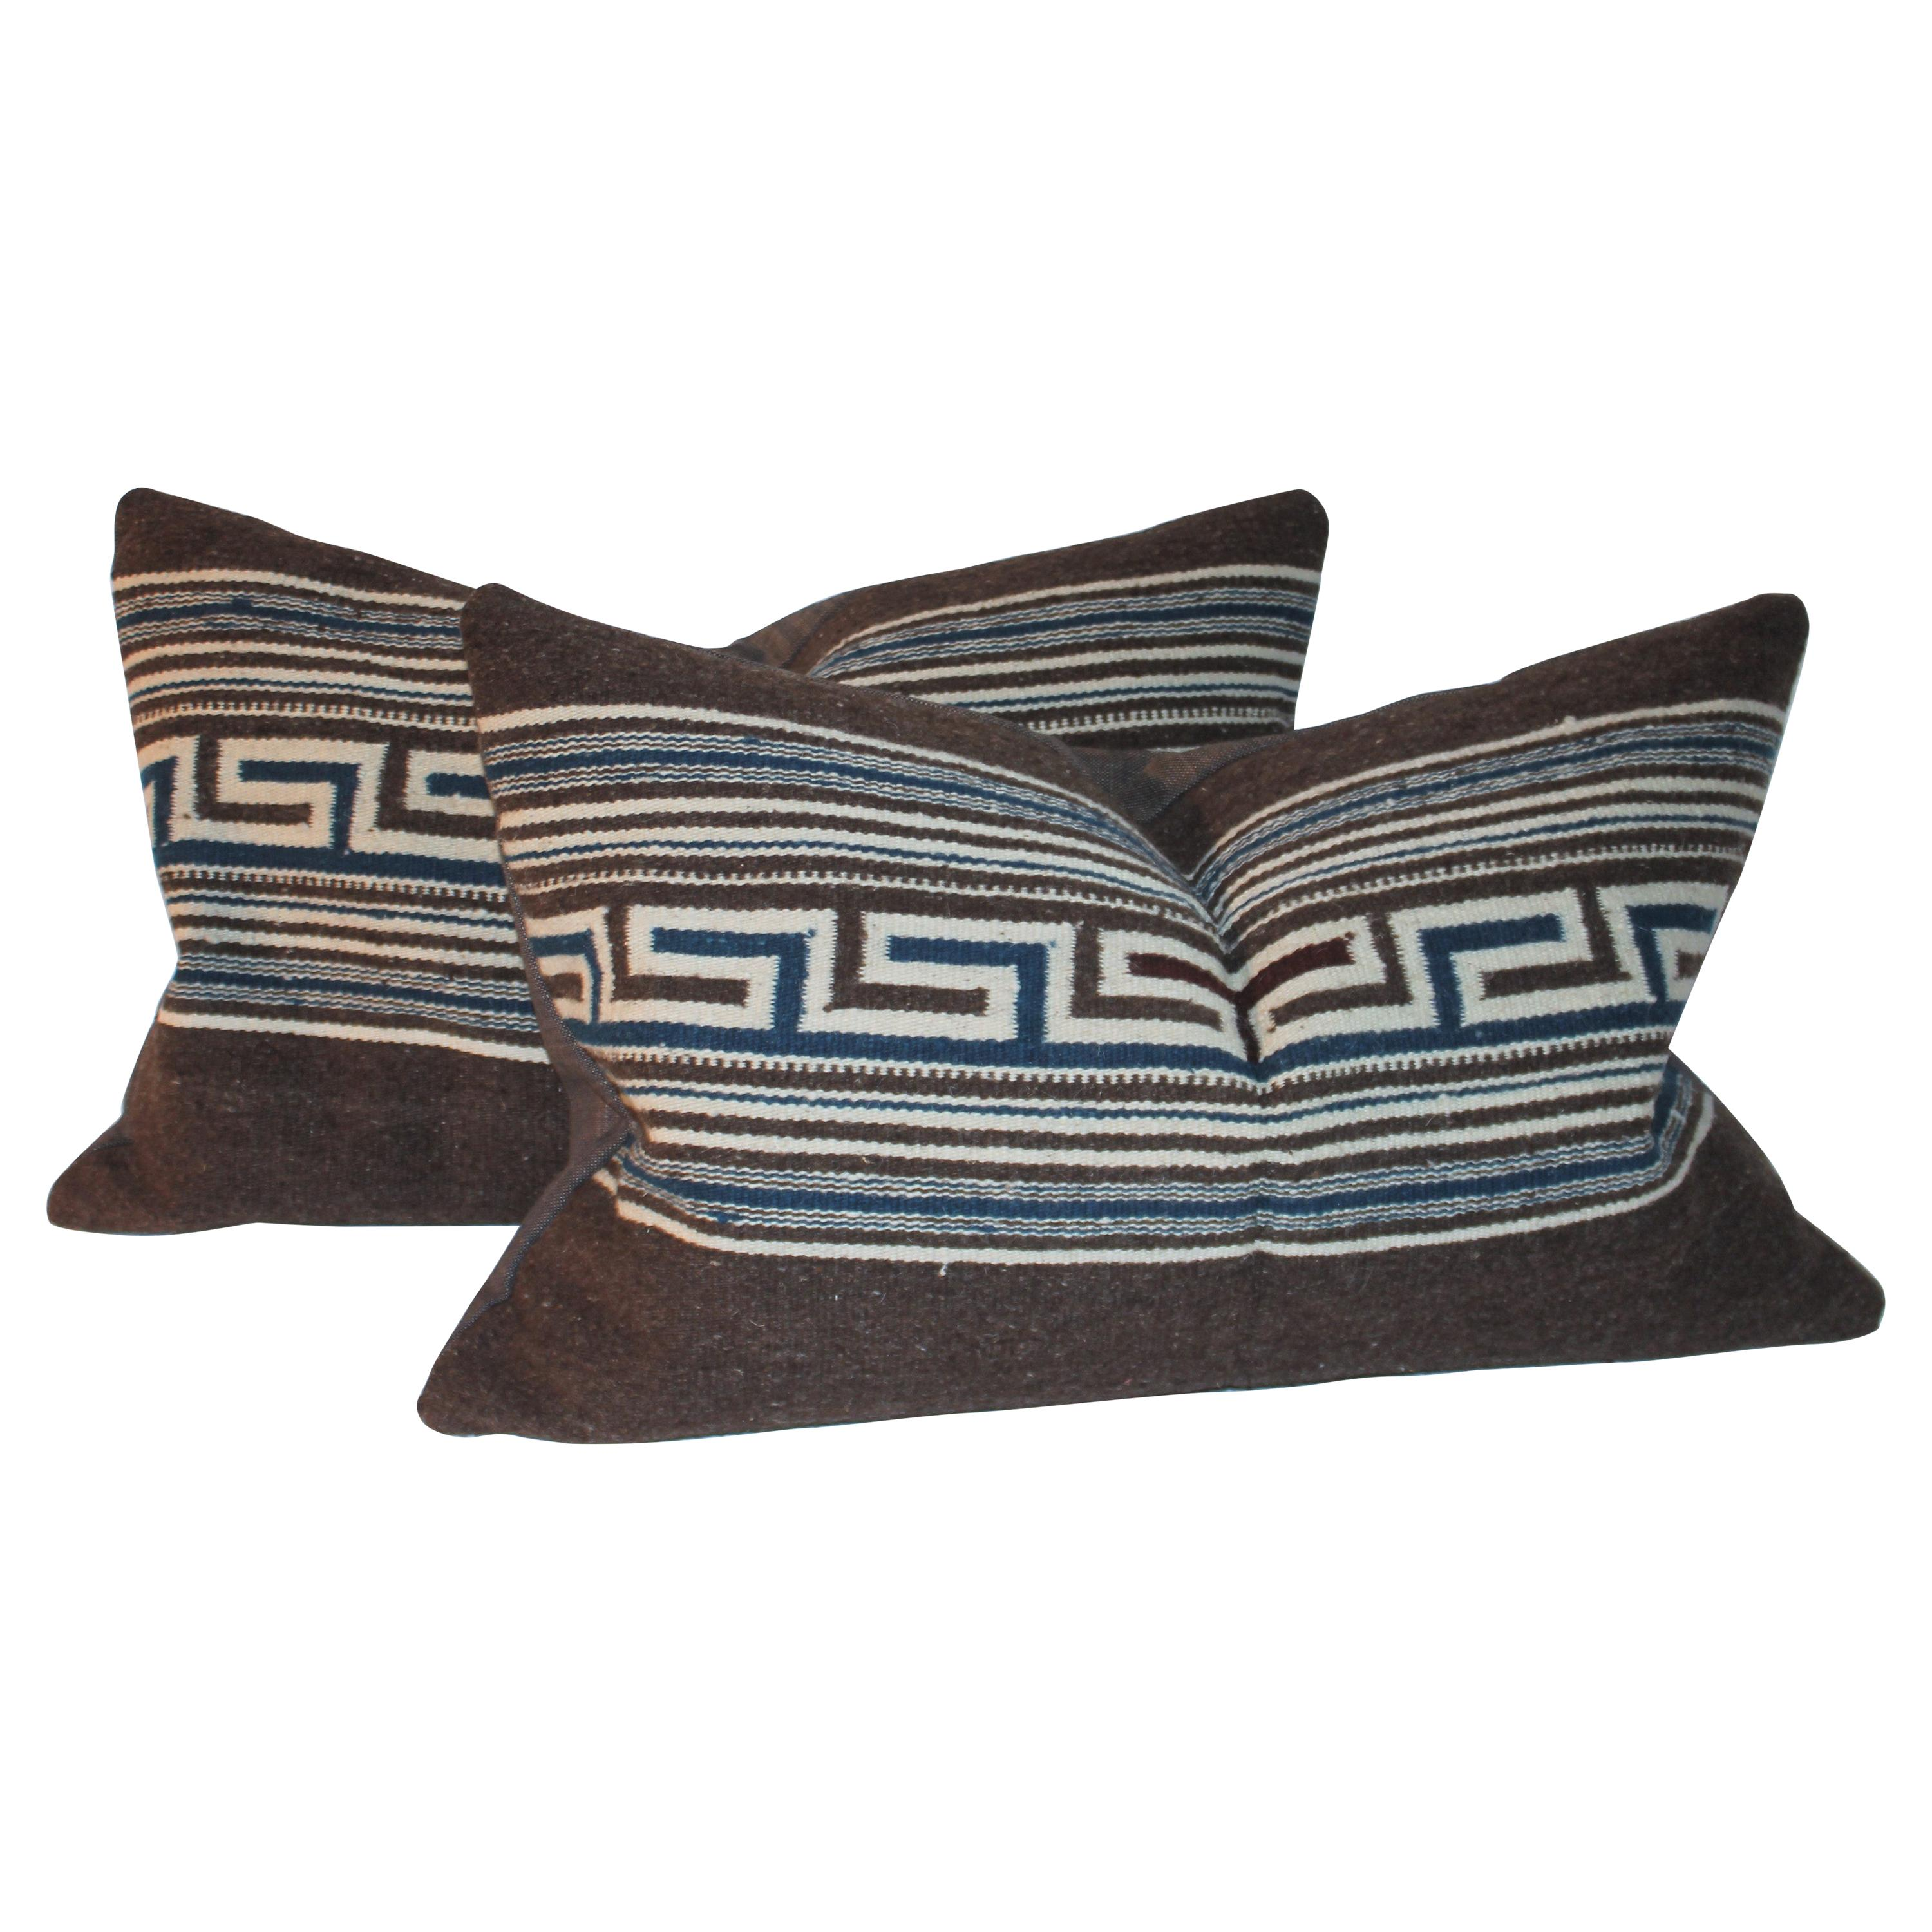 Mexican / American Indian Weaving Pillows, Pair